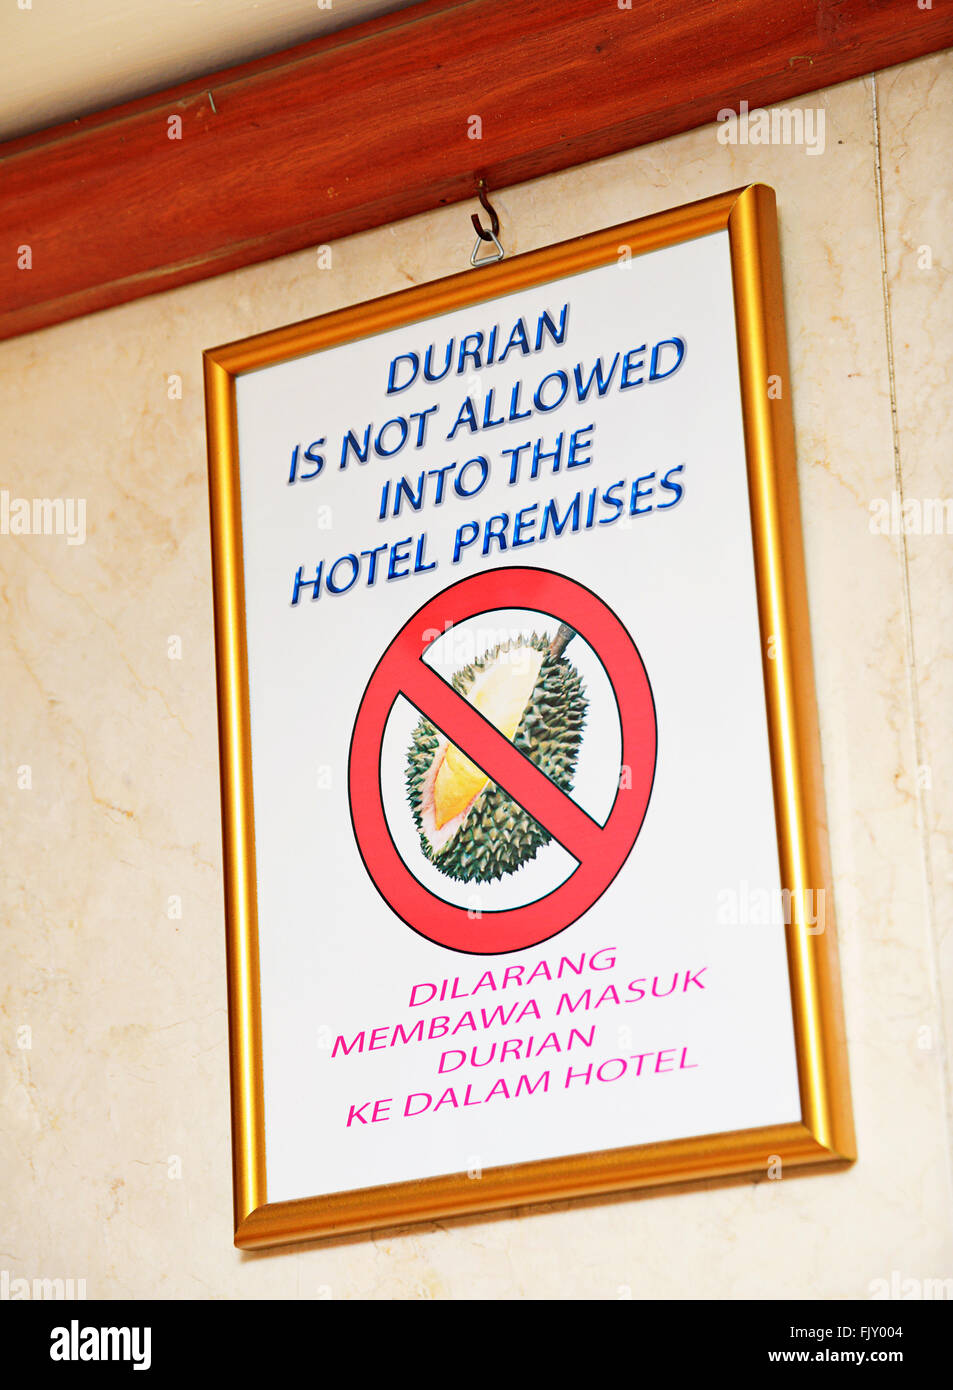 Warning sign prohibits guests to take smelly durian fruit into the hotel premises. - Stock Image